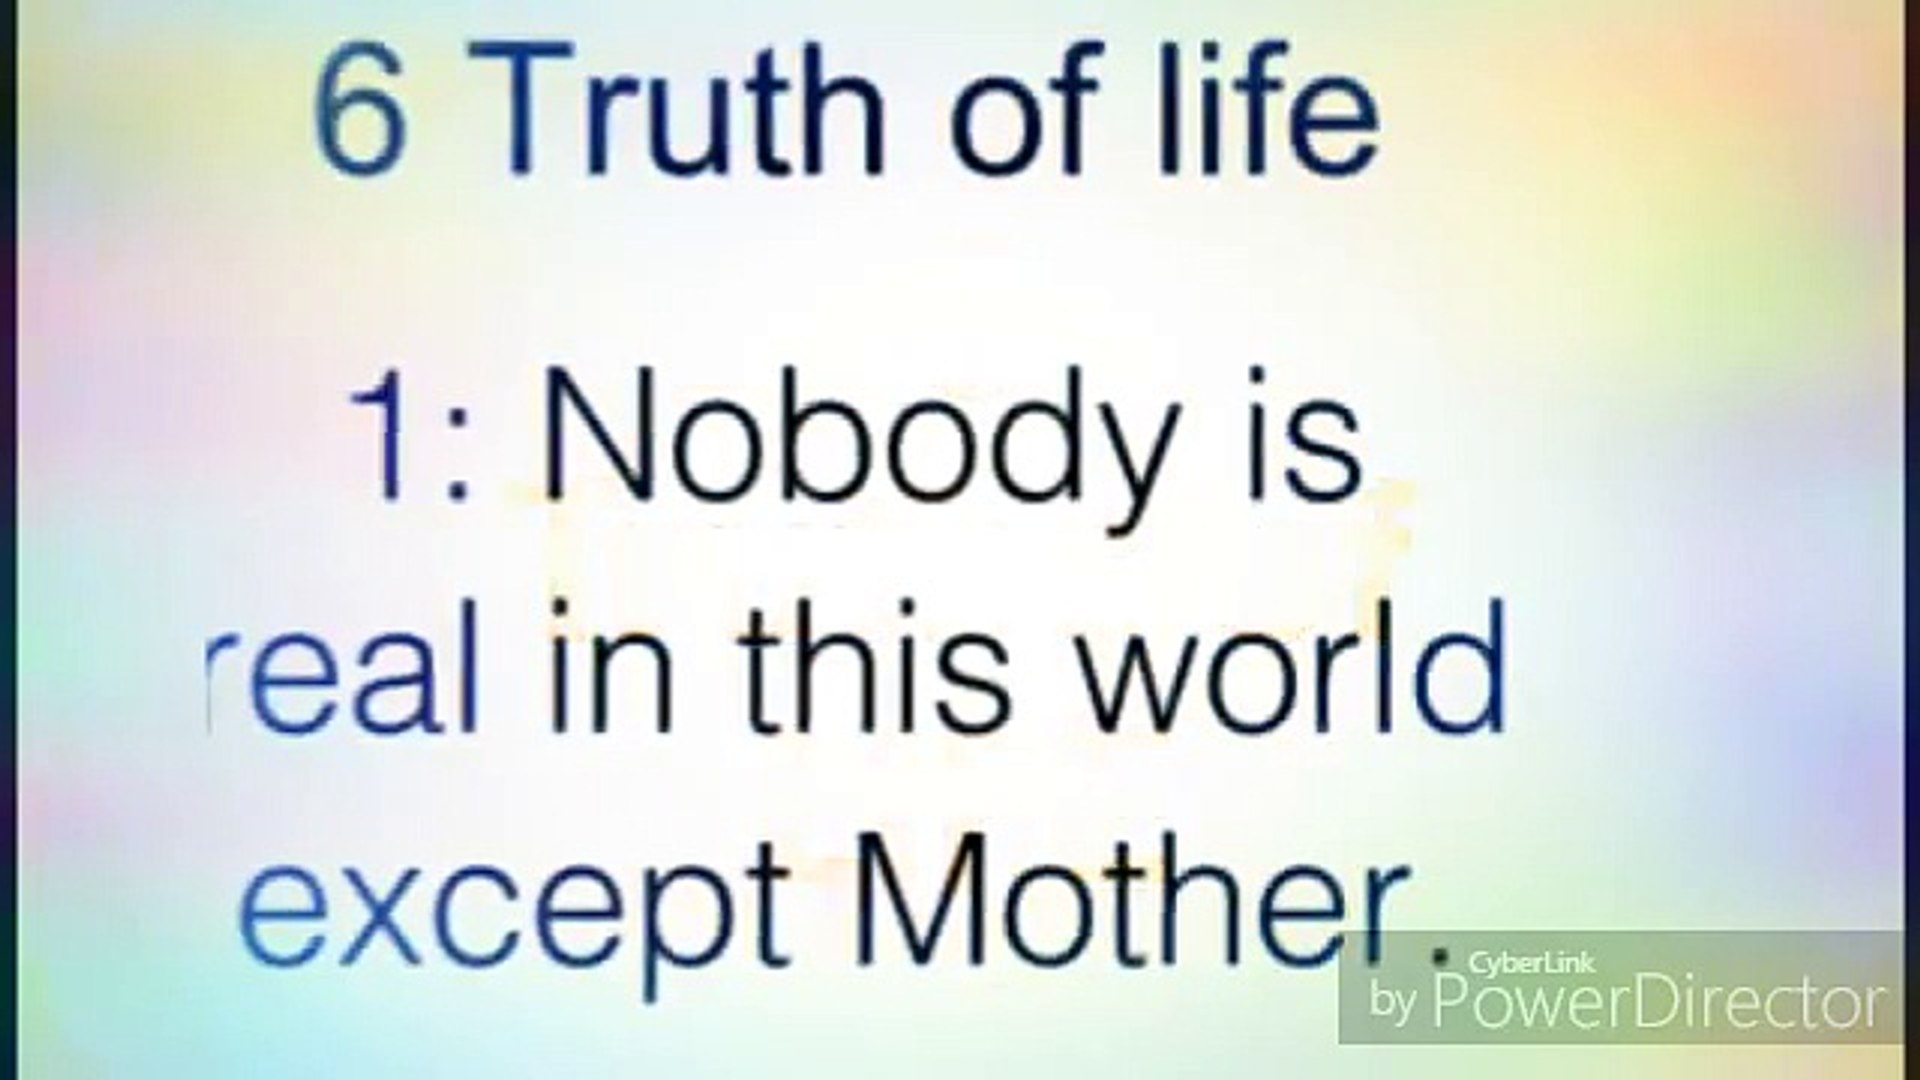 6.Truth of LIFE - WhatsApp status video - facts of life